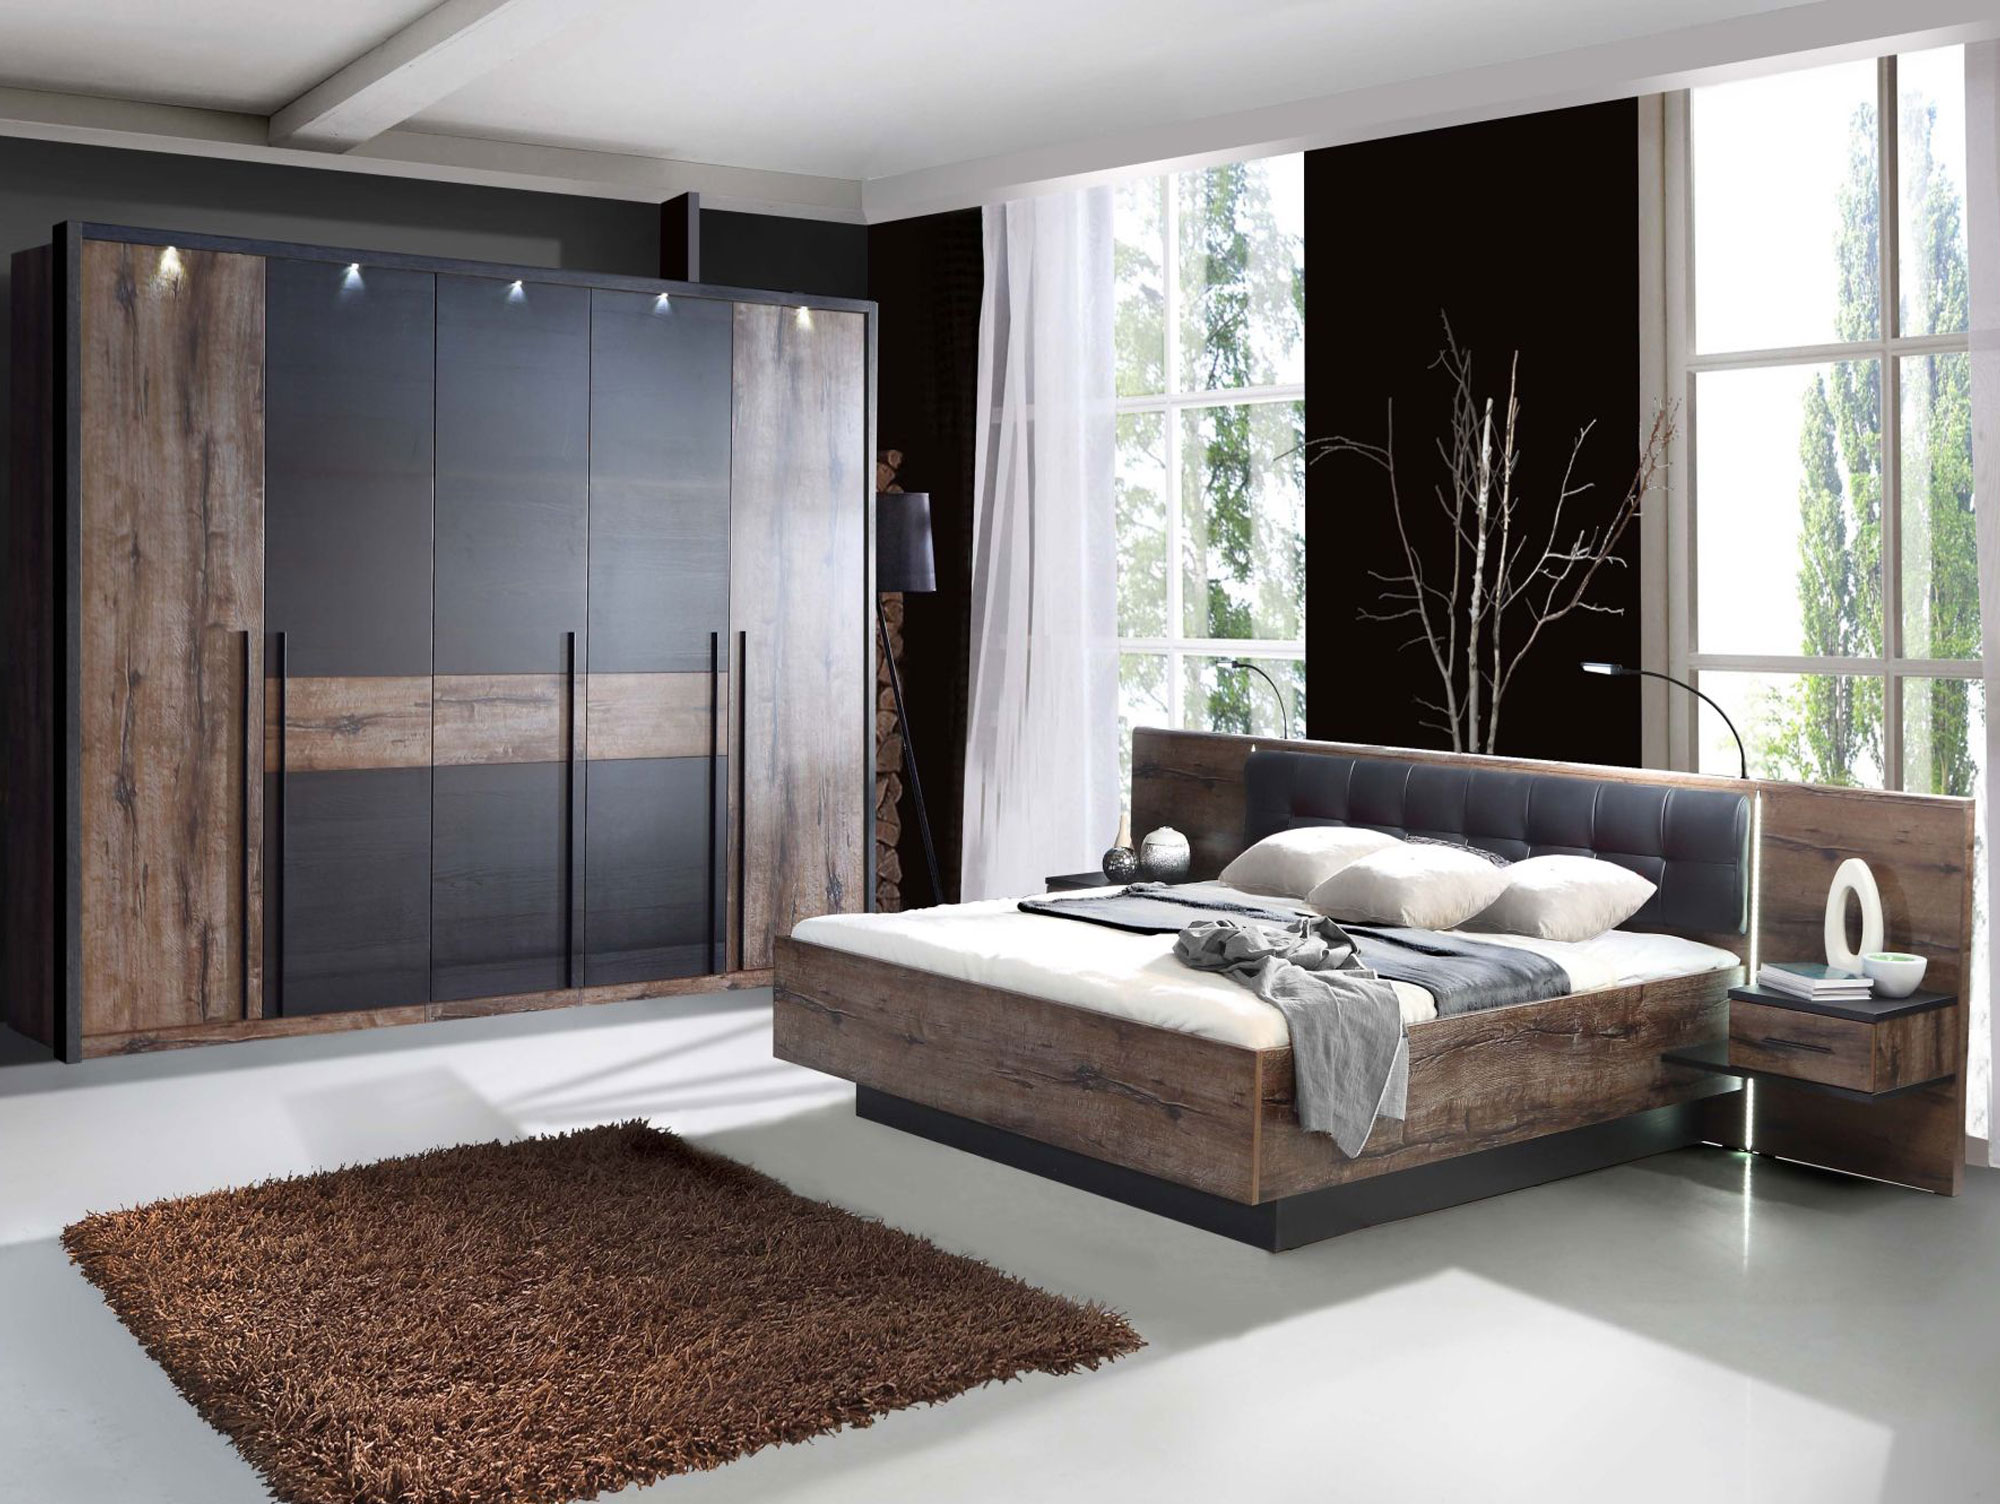 erlin kleiderschrank schlammeiche schwarzeiche. Black Bedroom Furniture Sets. Home Design Ideas